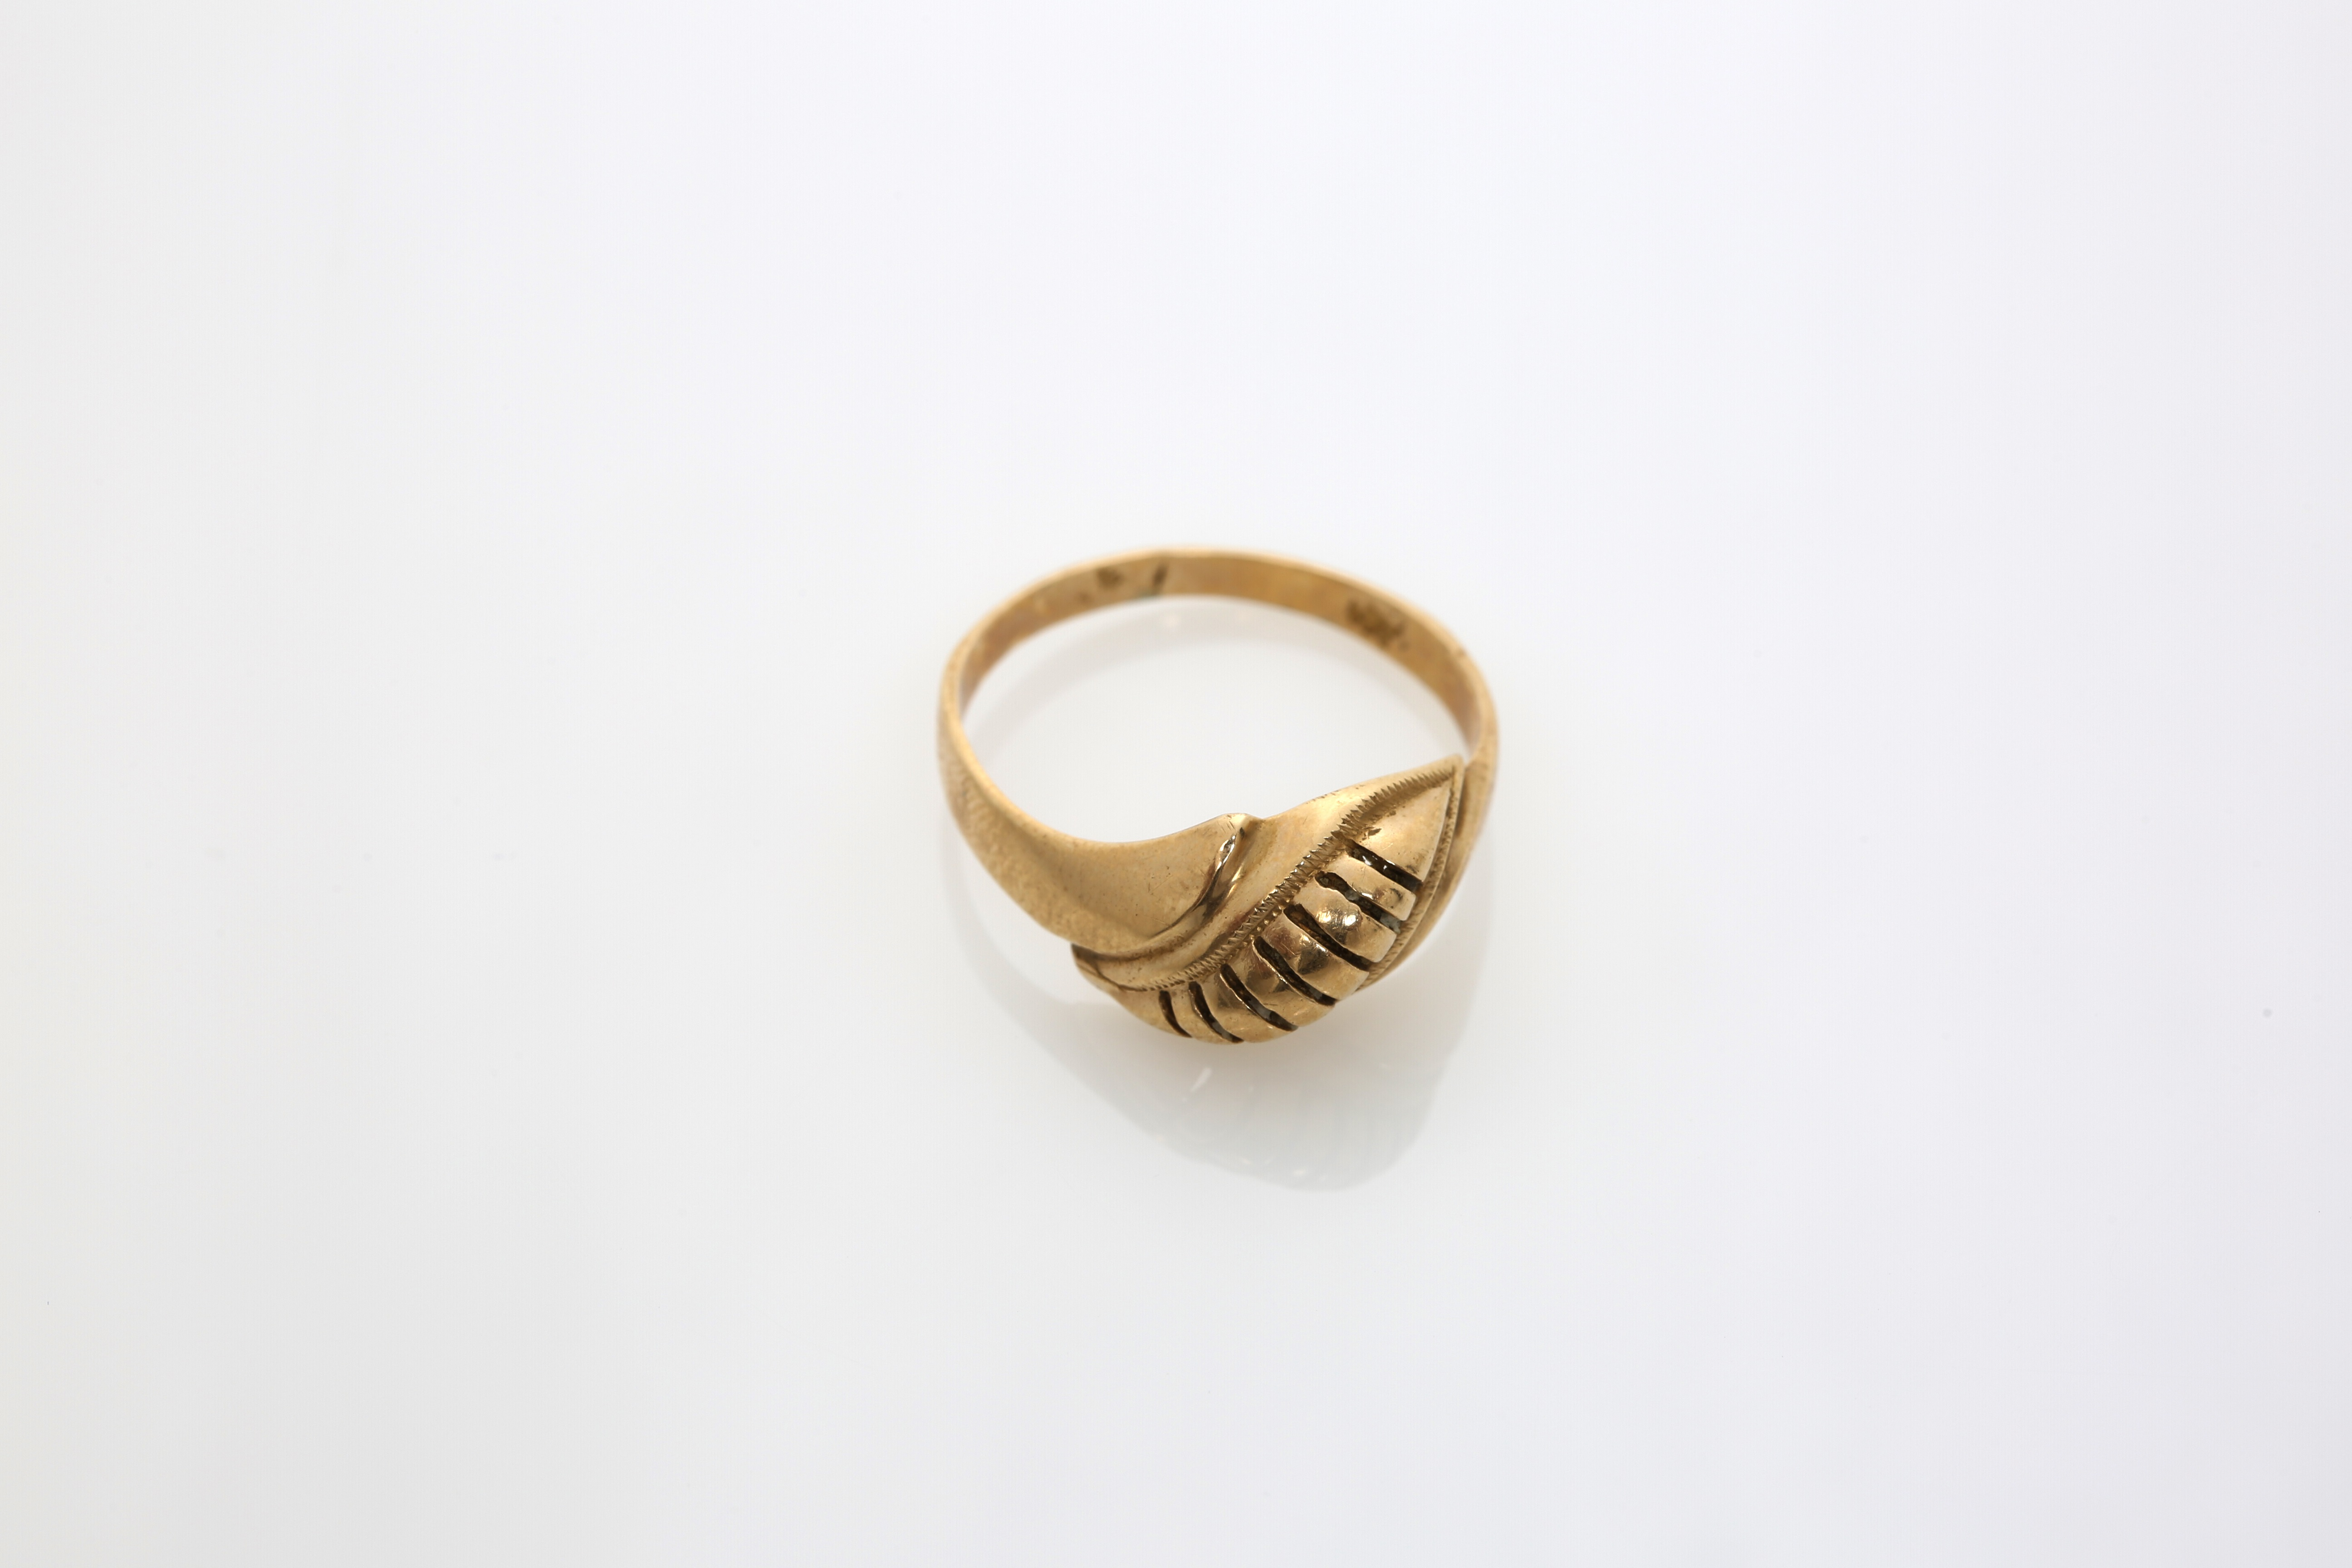 A Lady's Constantinople gold ring. Approx: 3 gr. - Image 2 of 2